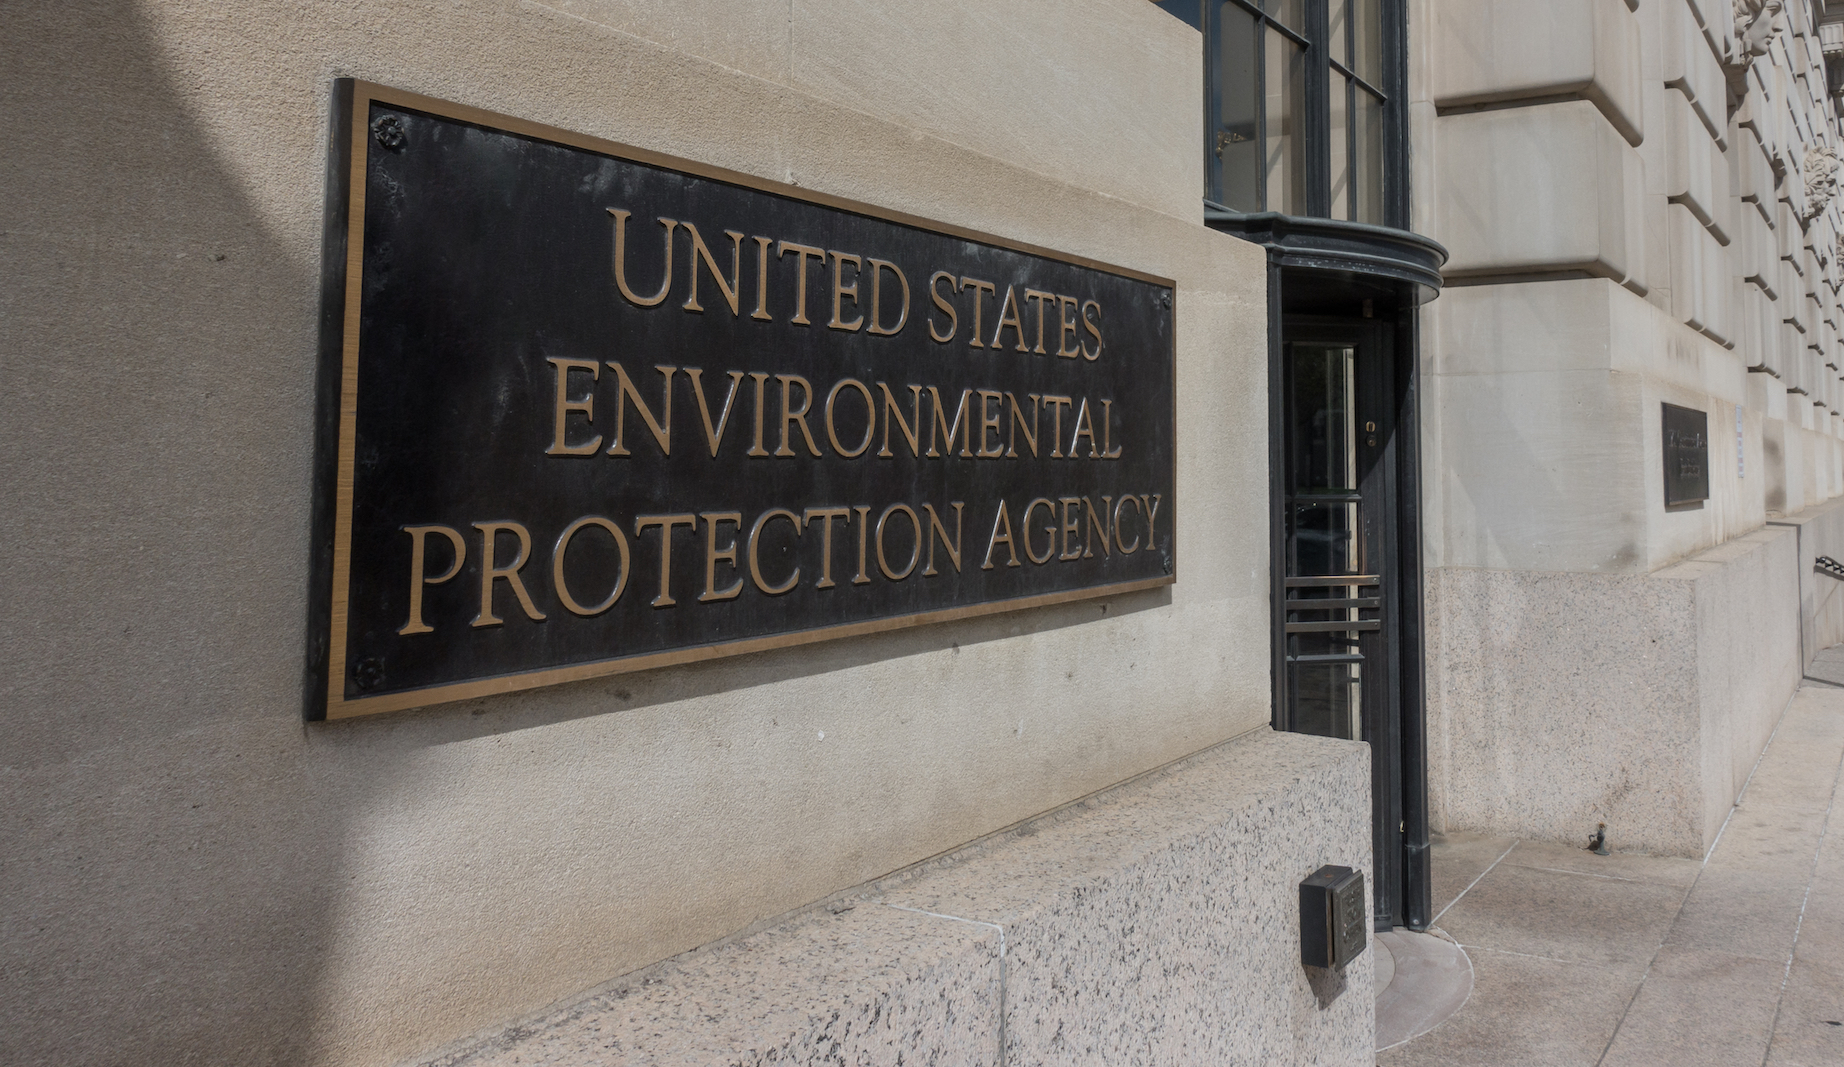 Scientists have filed a lawsuit against the EPA for unlawful changes in the way the organization assembles its advisory boards.